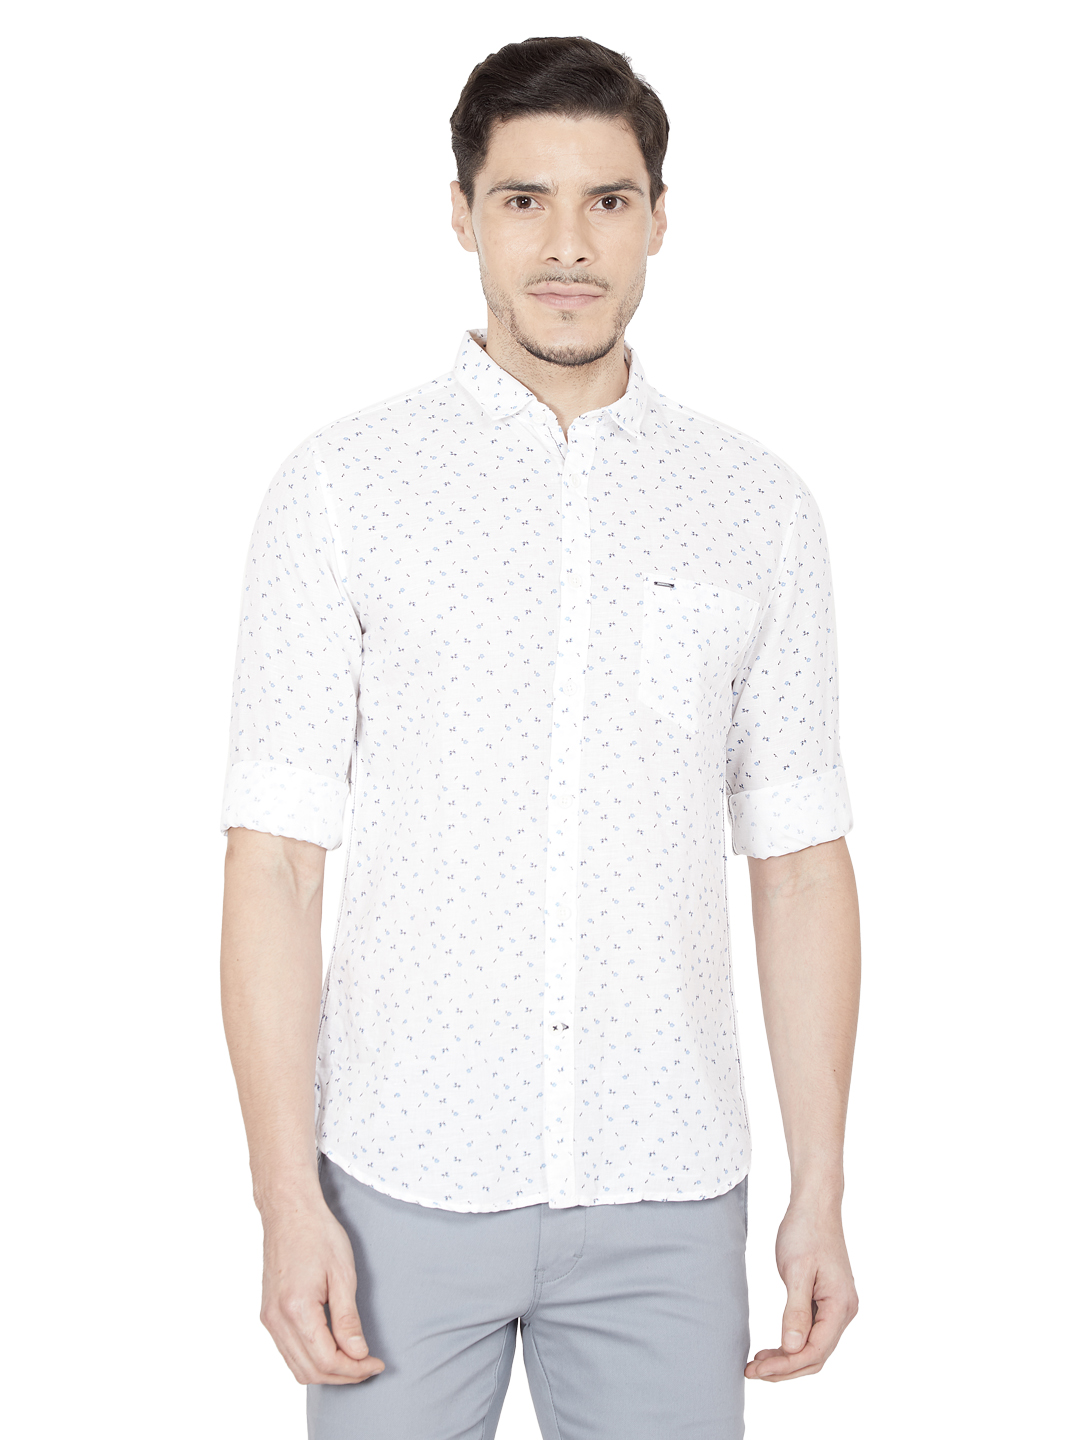 OXEMBERG | Oxemberg Men's Slim-fit Cotton Casual Shirt